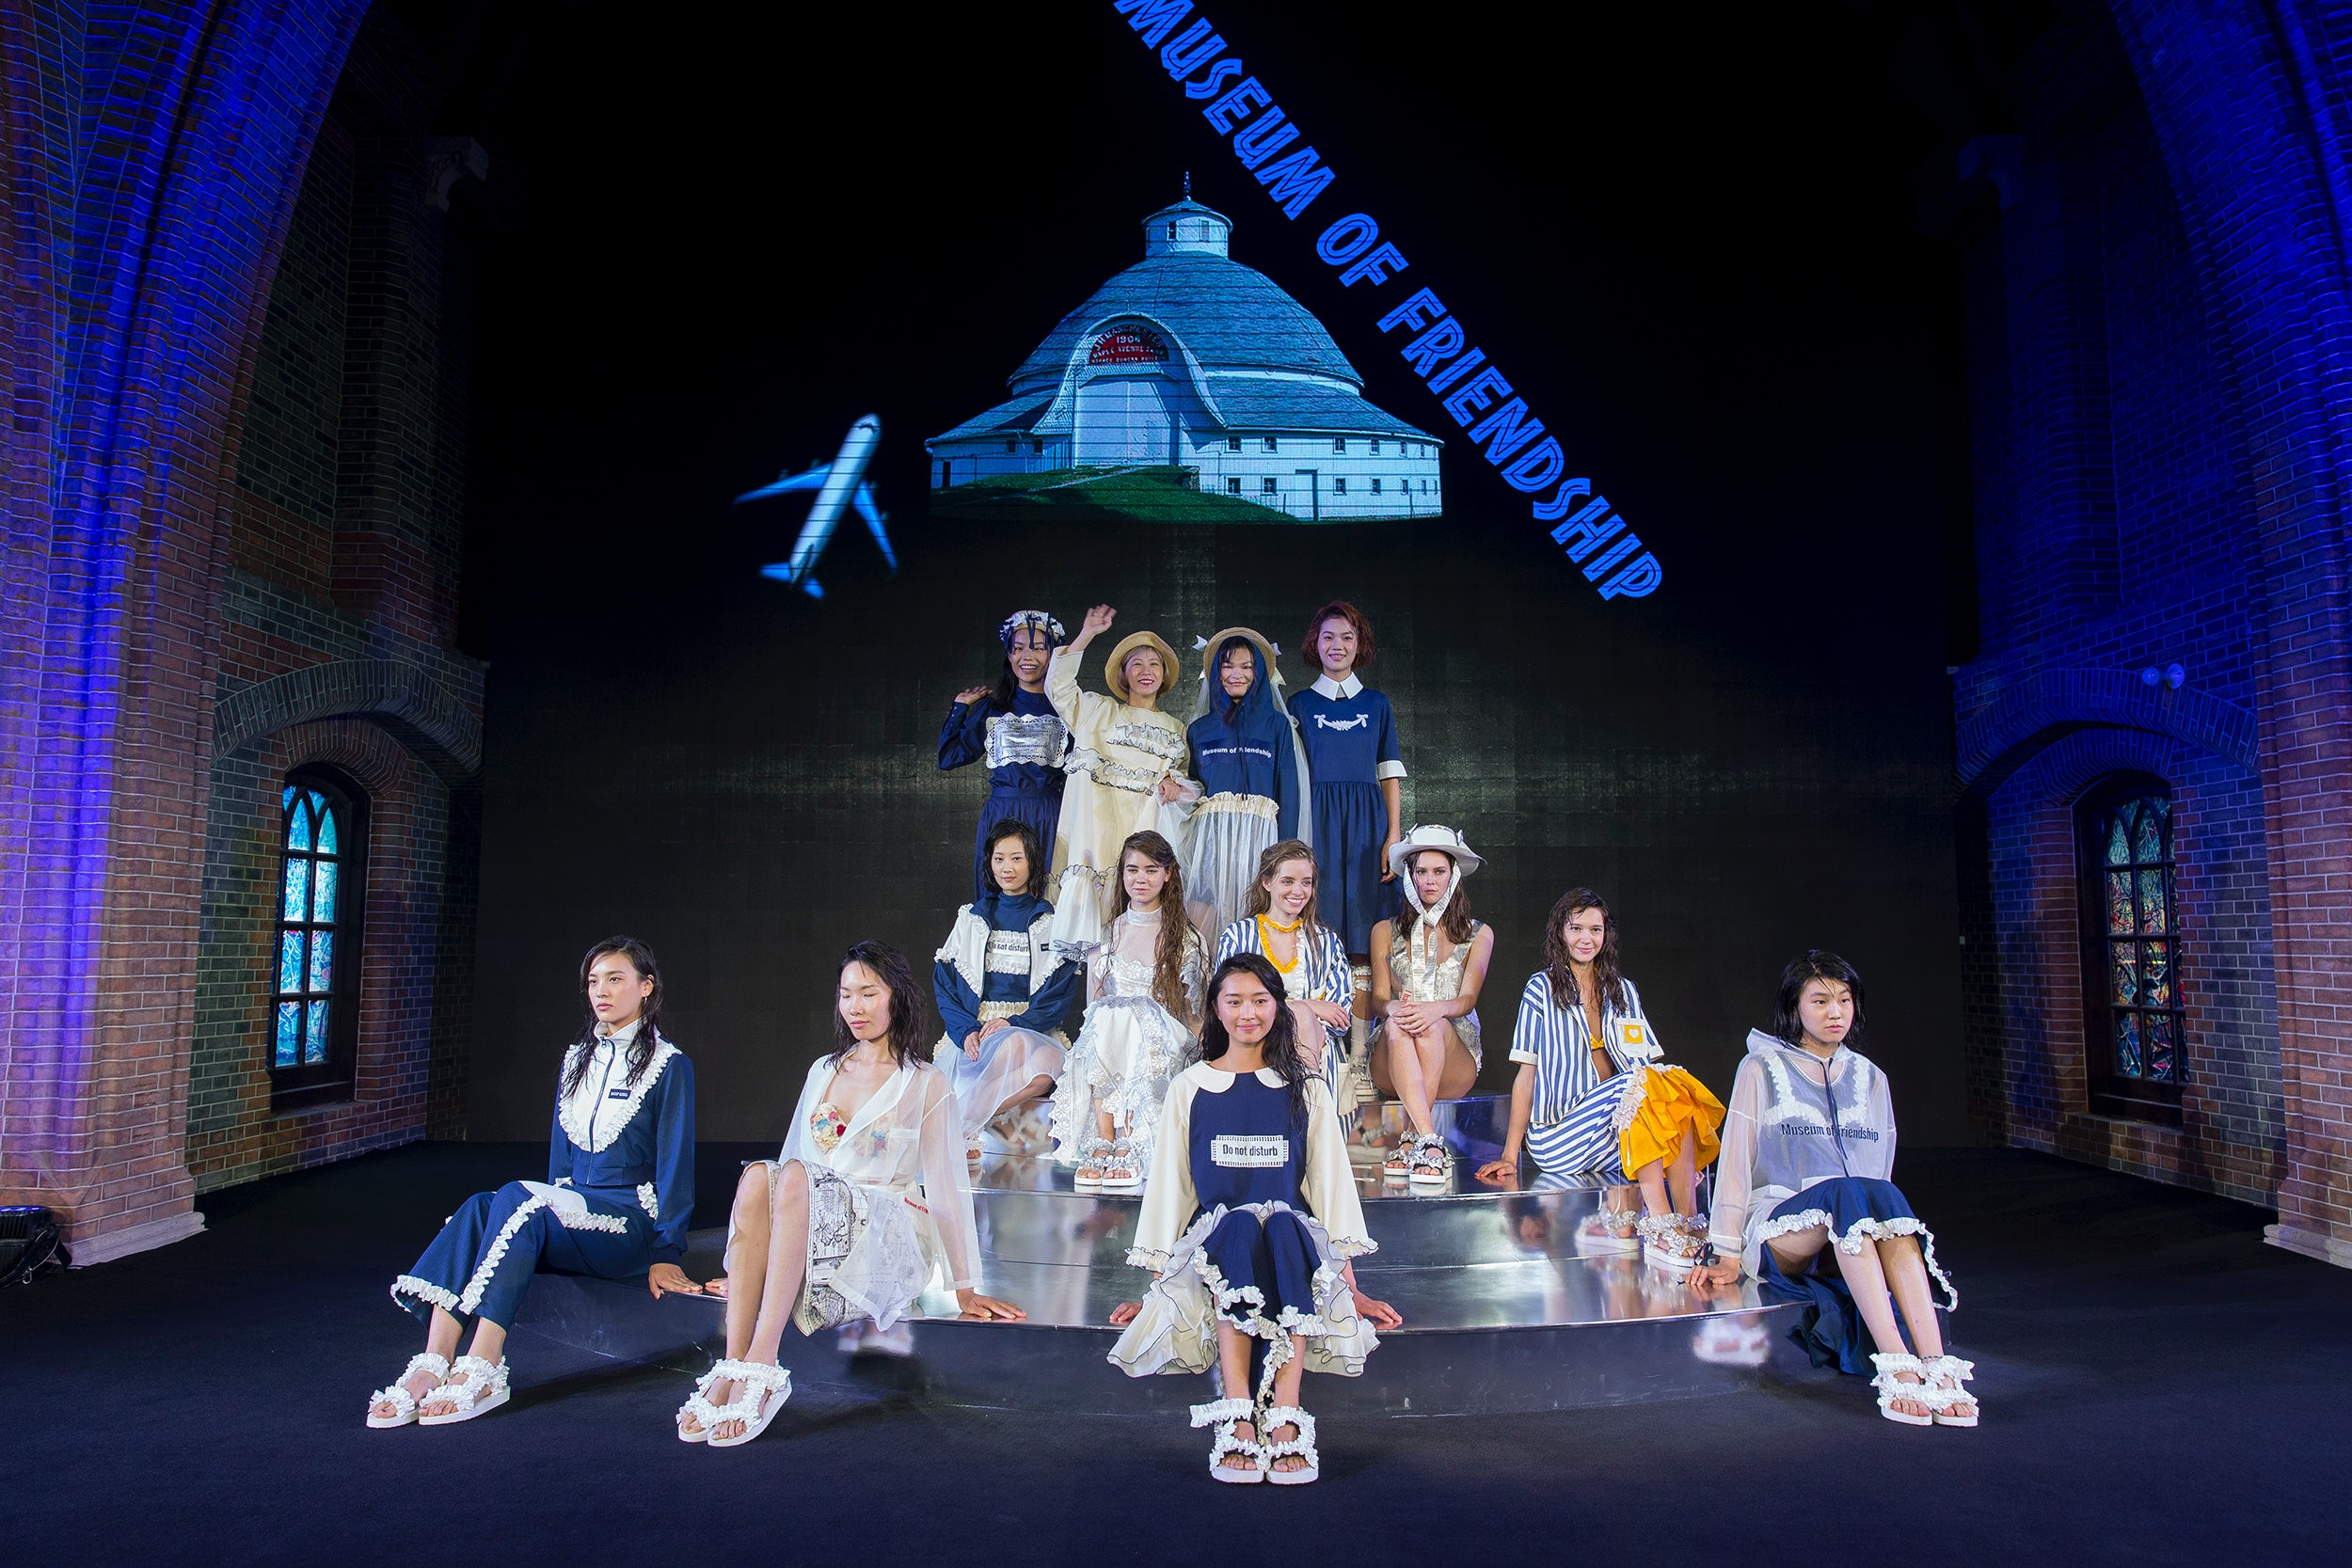 Shanghai Fashion Week's Bid for Global Relevance